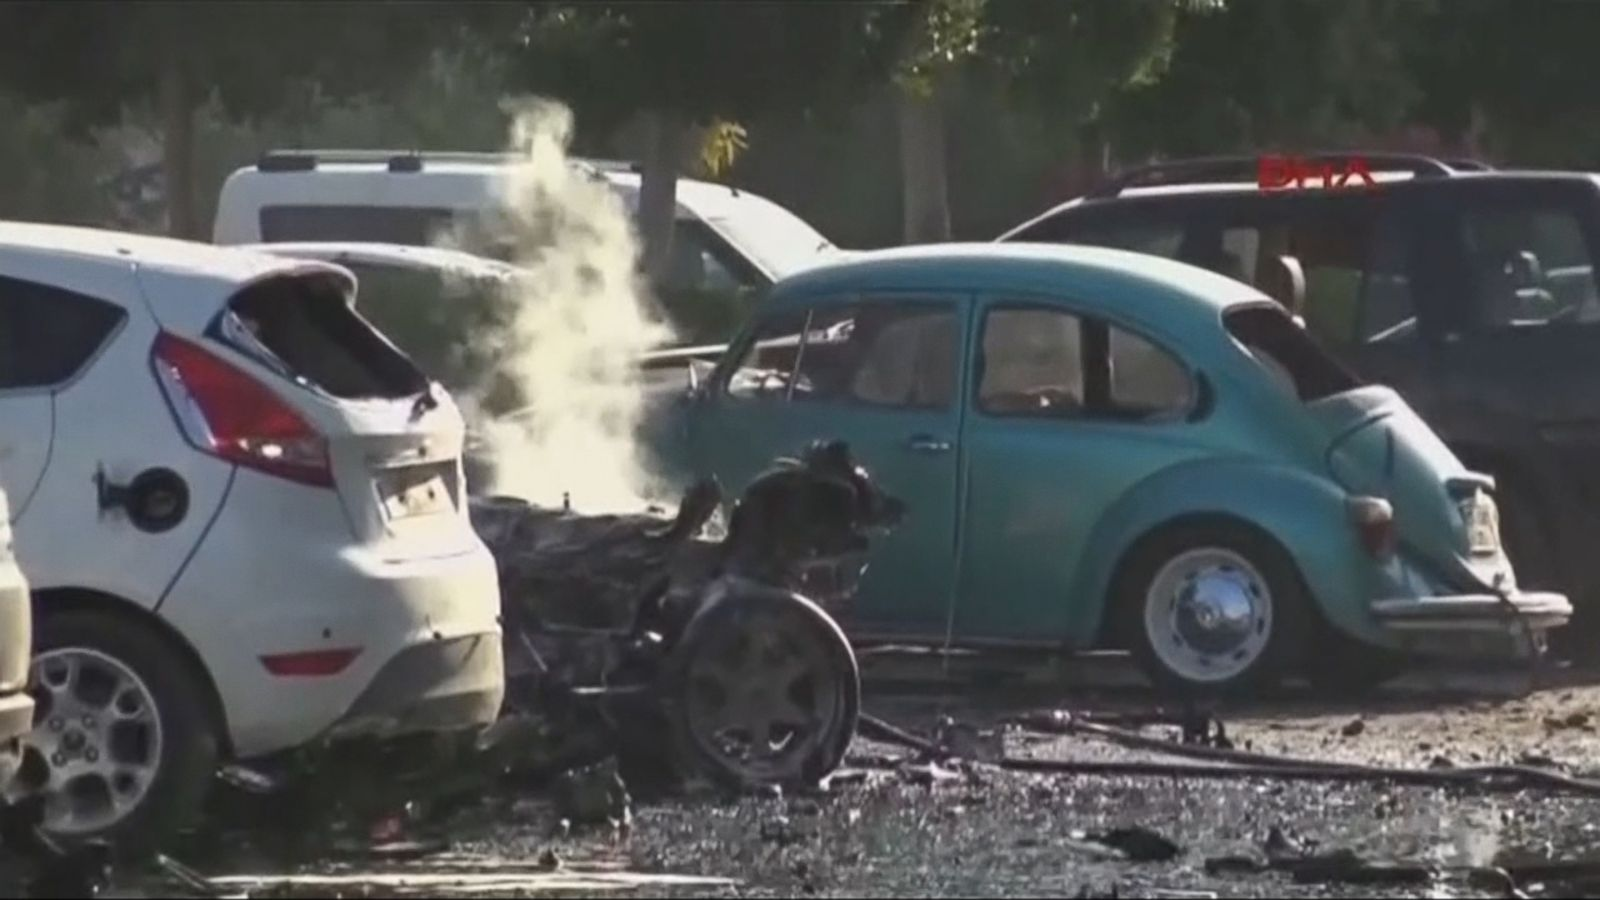 VIDEO: An explosion inside a car left in the parking lot of the local chamber of trade in the Mediterranean resort of Antalya on Tuesday slightly injured about a dozen people, an official said.